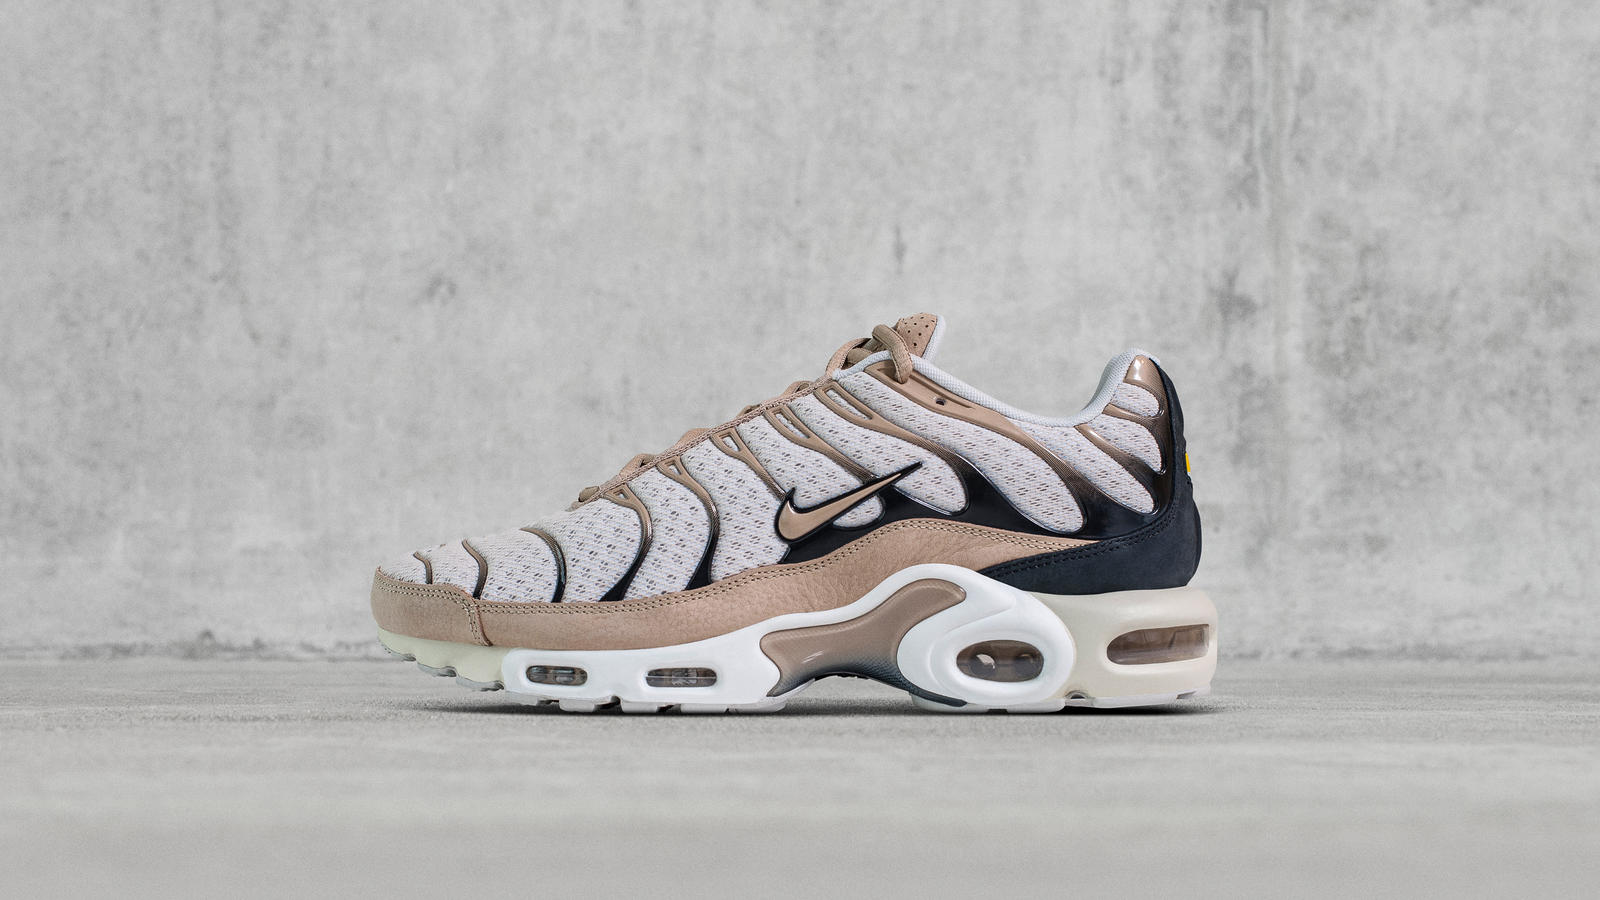 new style ddc3e 616bd NikeLab Air Max Plus - Nike News